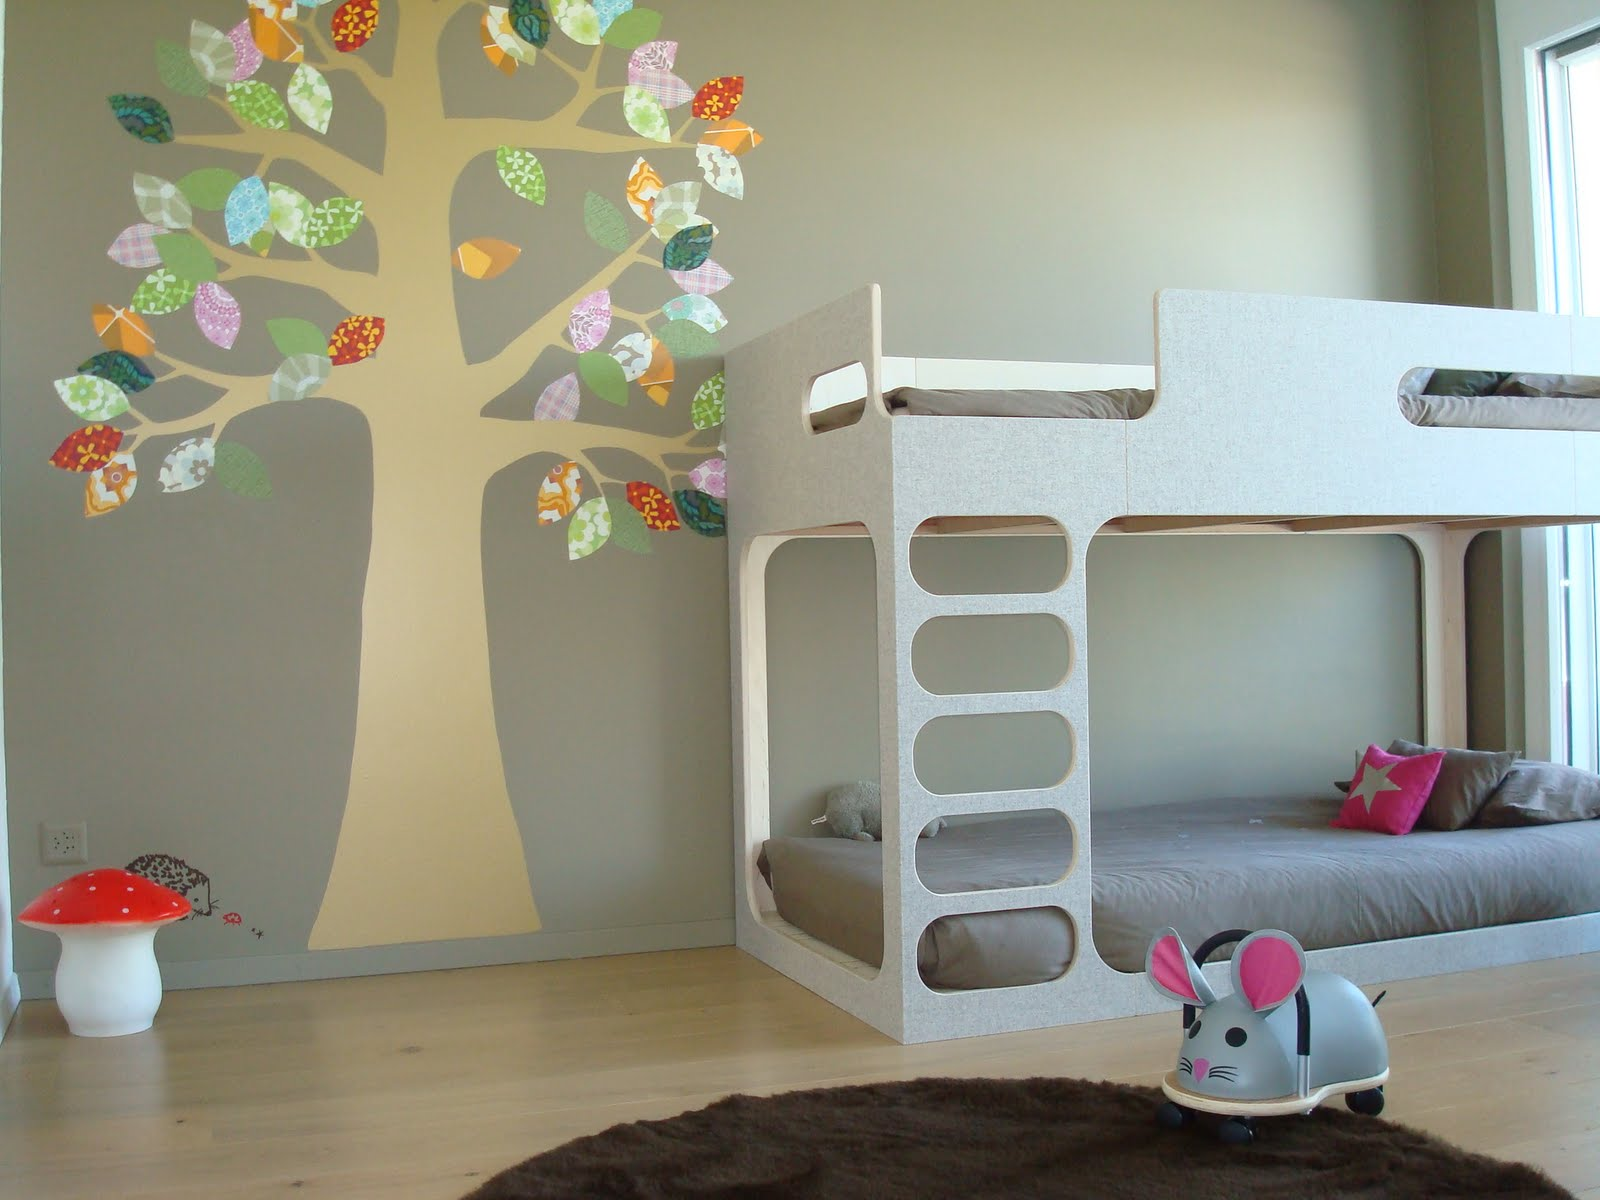 Childrens bedroom wallpaper ideas home decor uk for Bedroom wall mural ideas